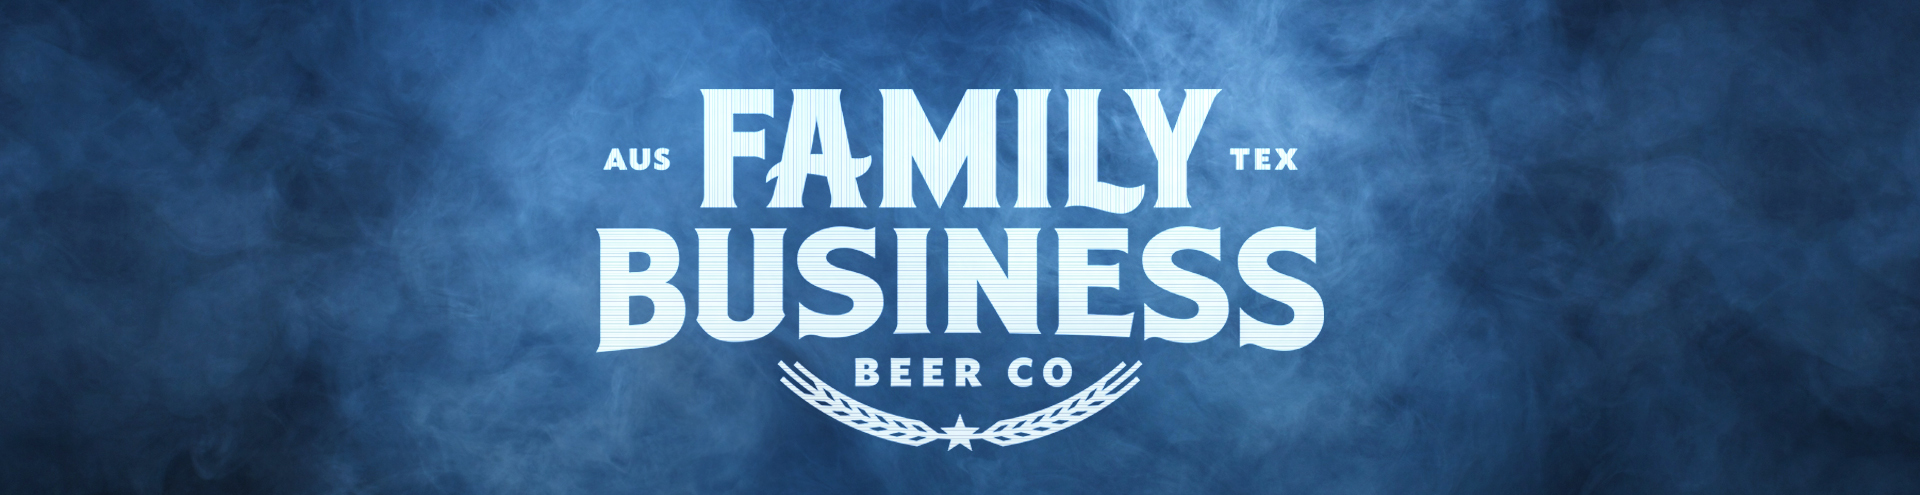 Family Business Beer Co Store Store